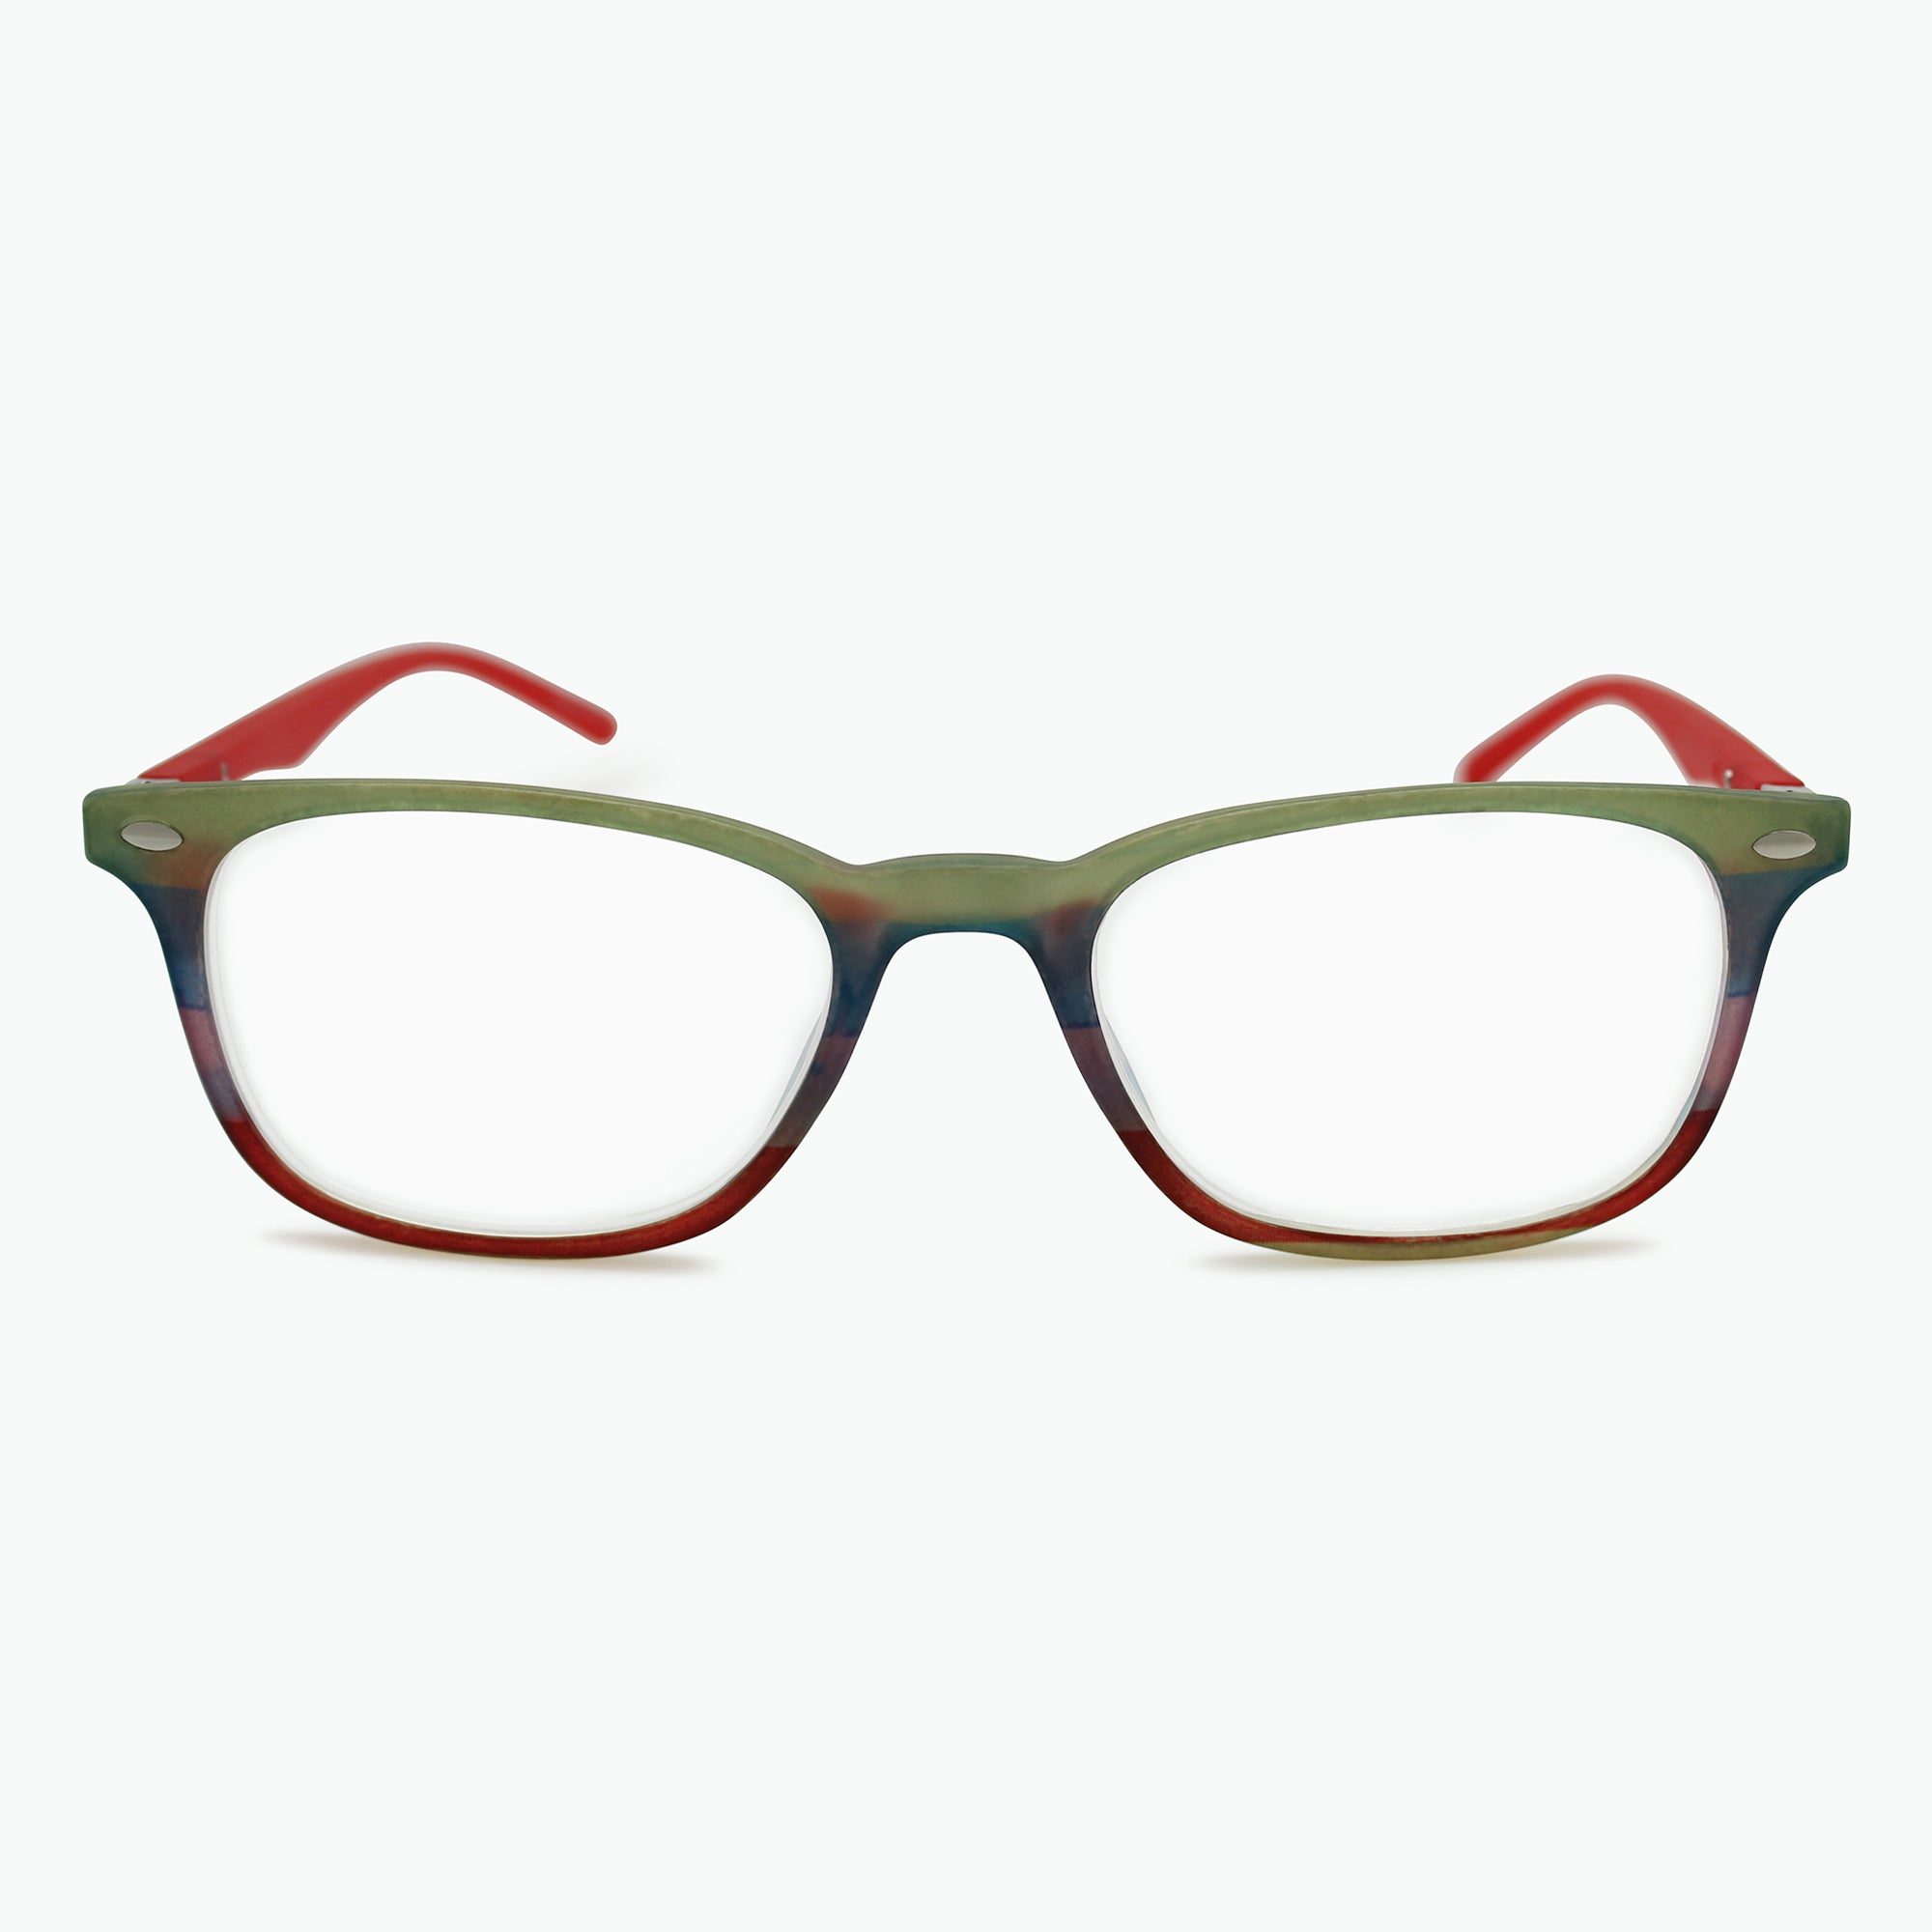 Colorful Striped Retro Square Reading Glasses l Fully Magnified Lenses R-603